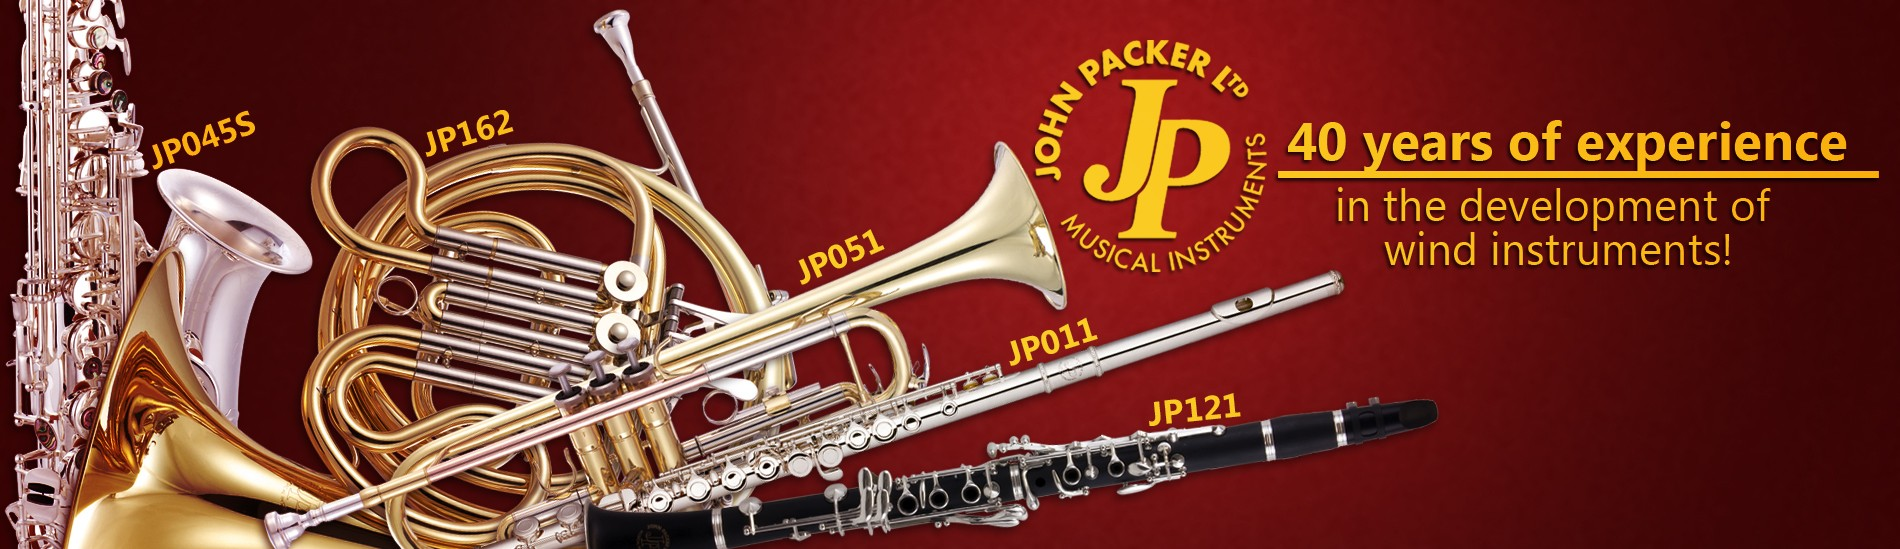 John Packer 40 years of experience in the development of wind instruments!